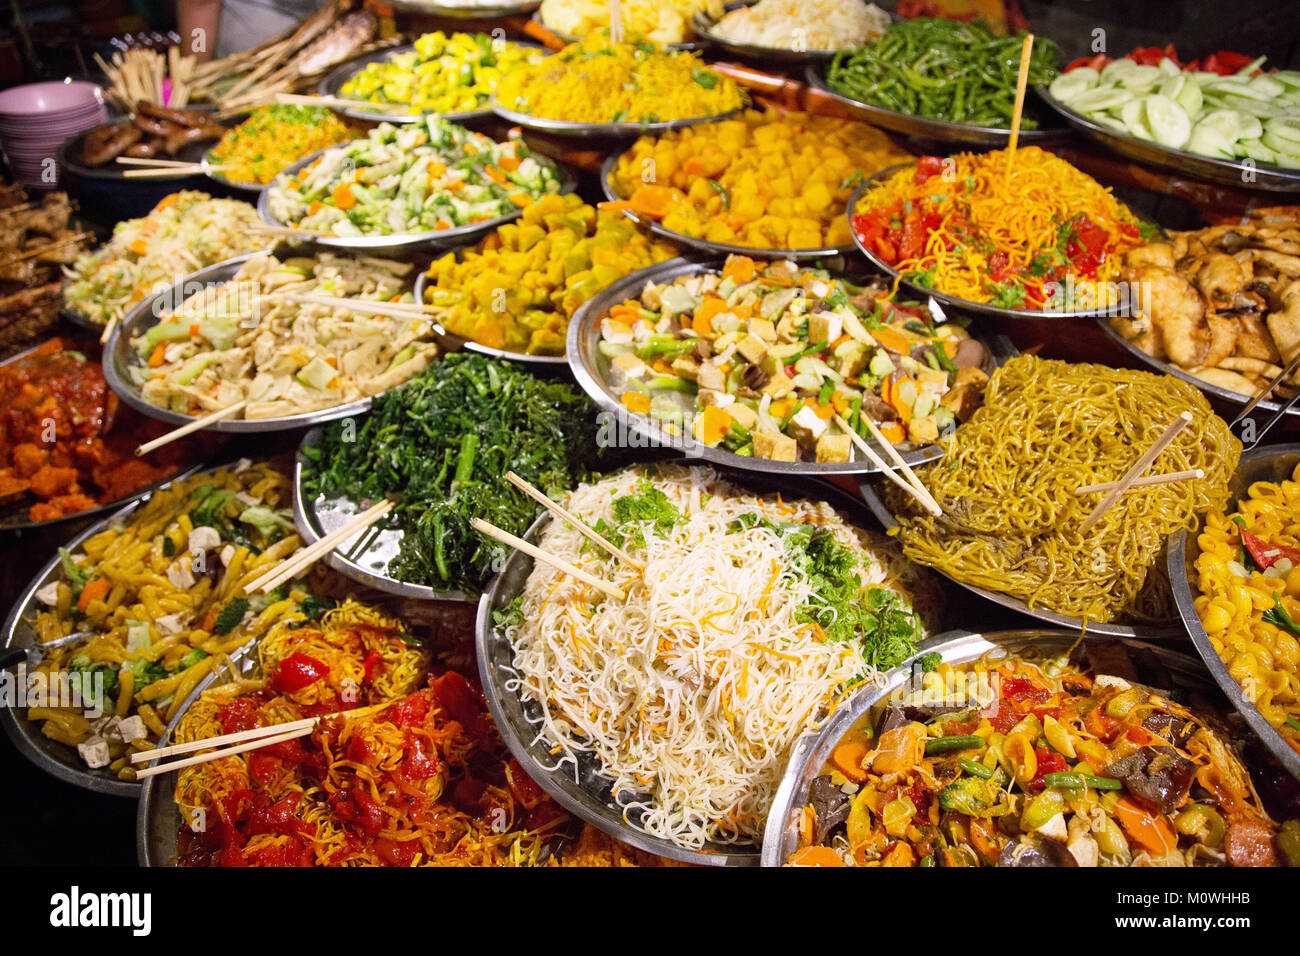 Street food at the Nightmarket in UNESCO Worldheritage Town of Luang Prabang, Laos, Indochina - Stock Image